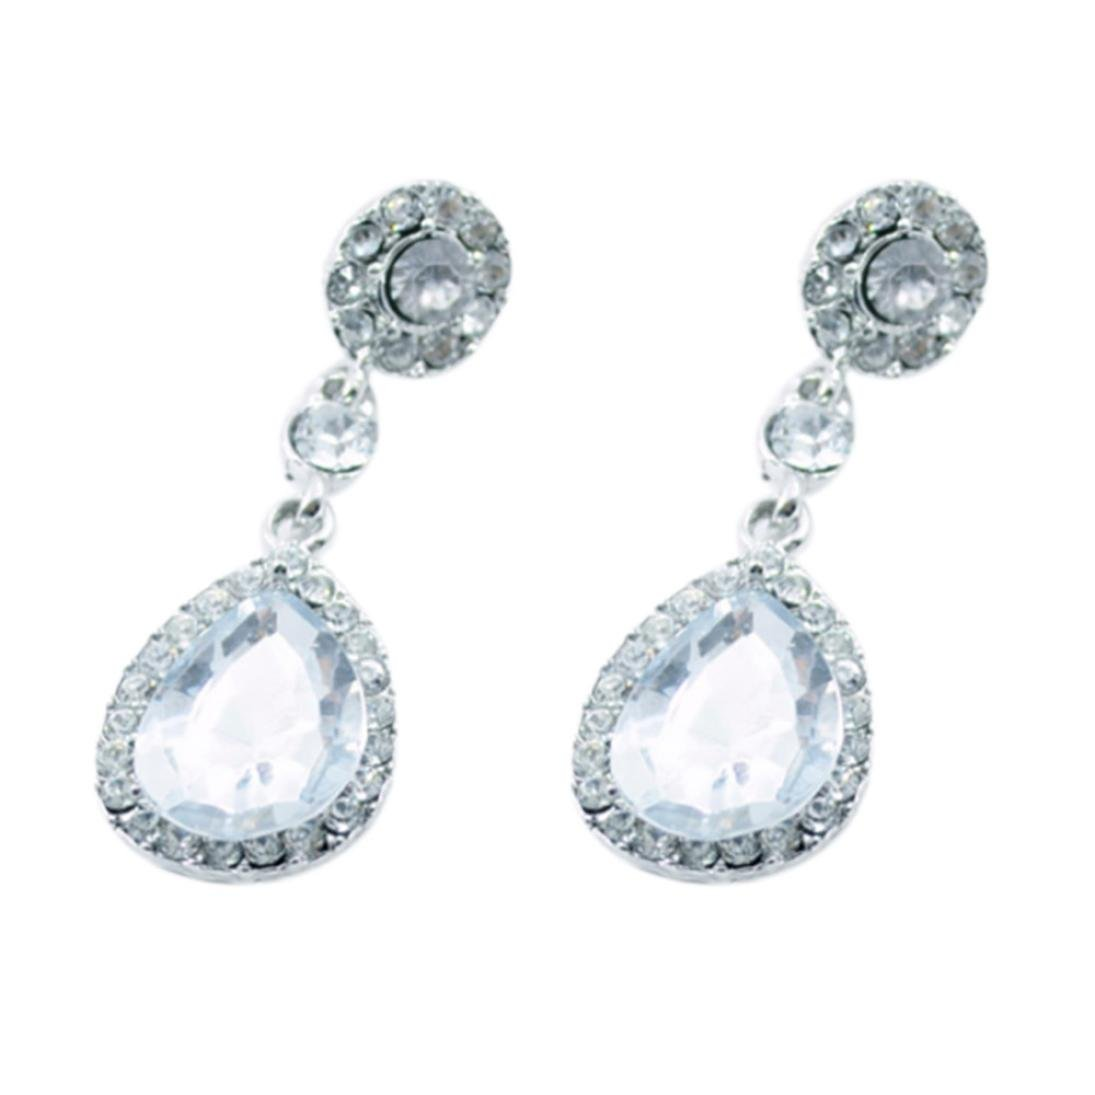 Minshao 1Pair Women Drop Shape Alloy Ear Stud Imitation Crystal Earrings Jewelry (White)